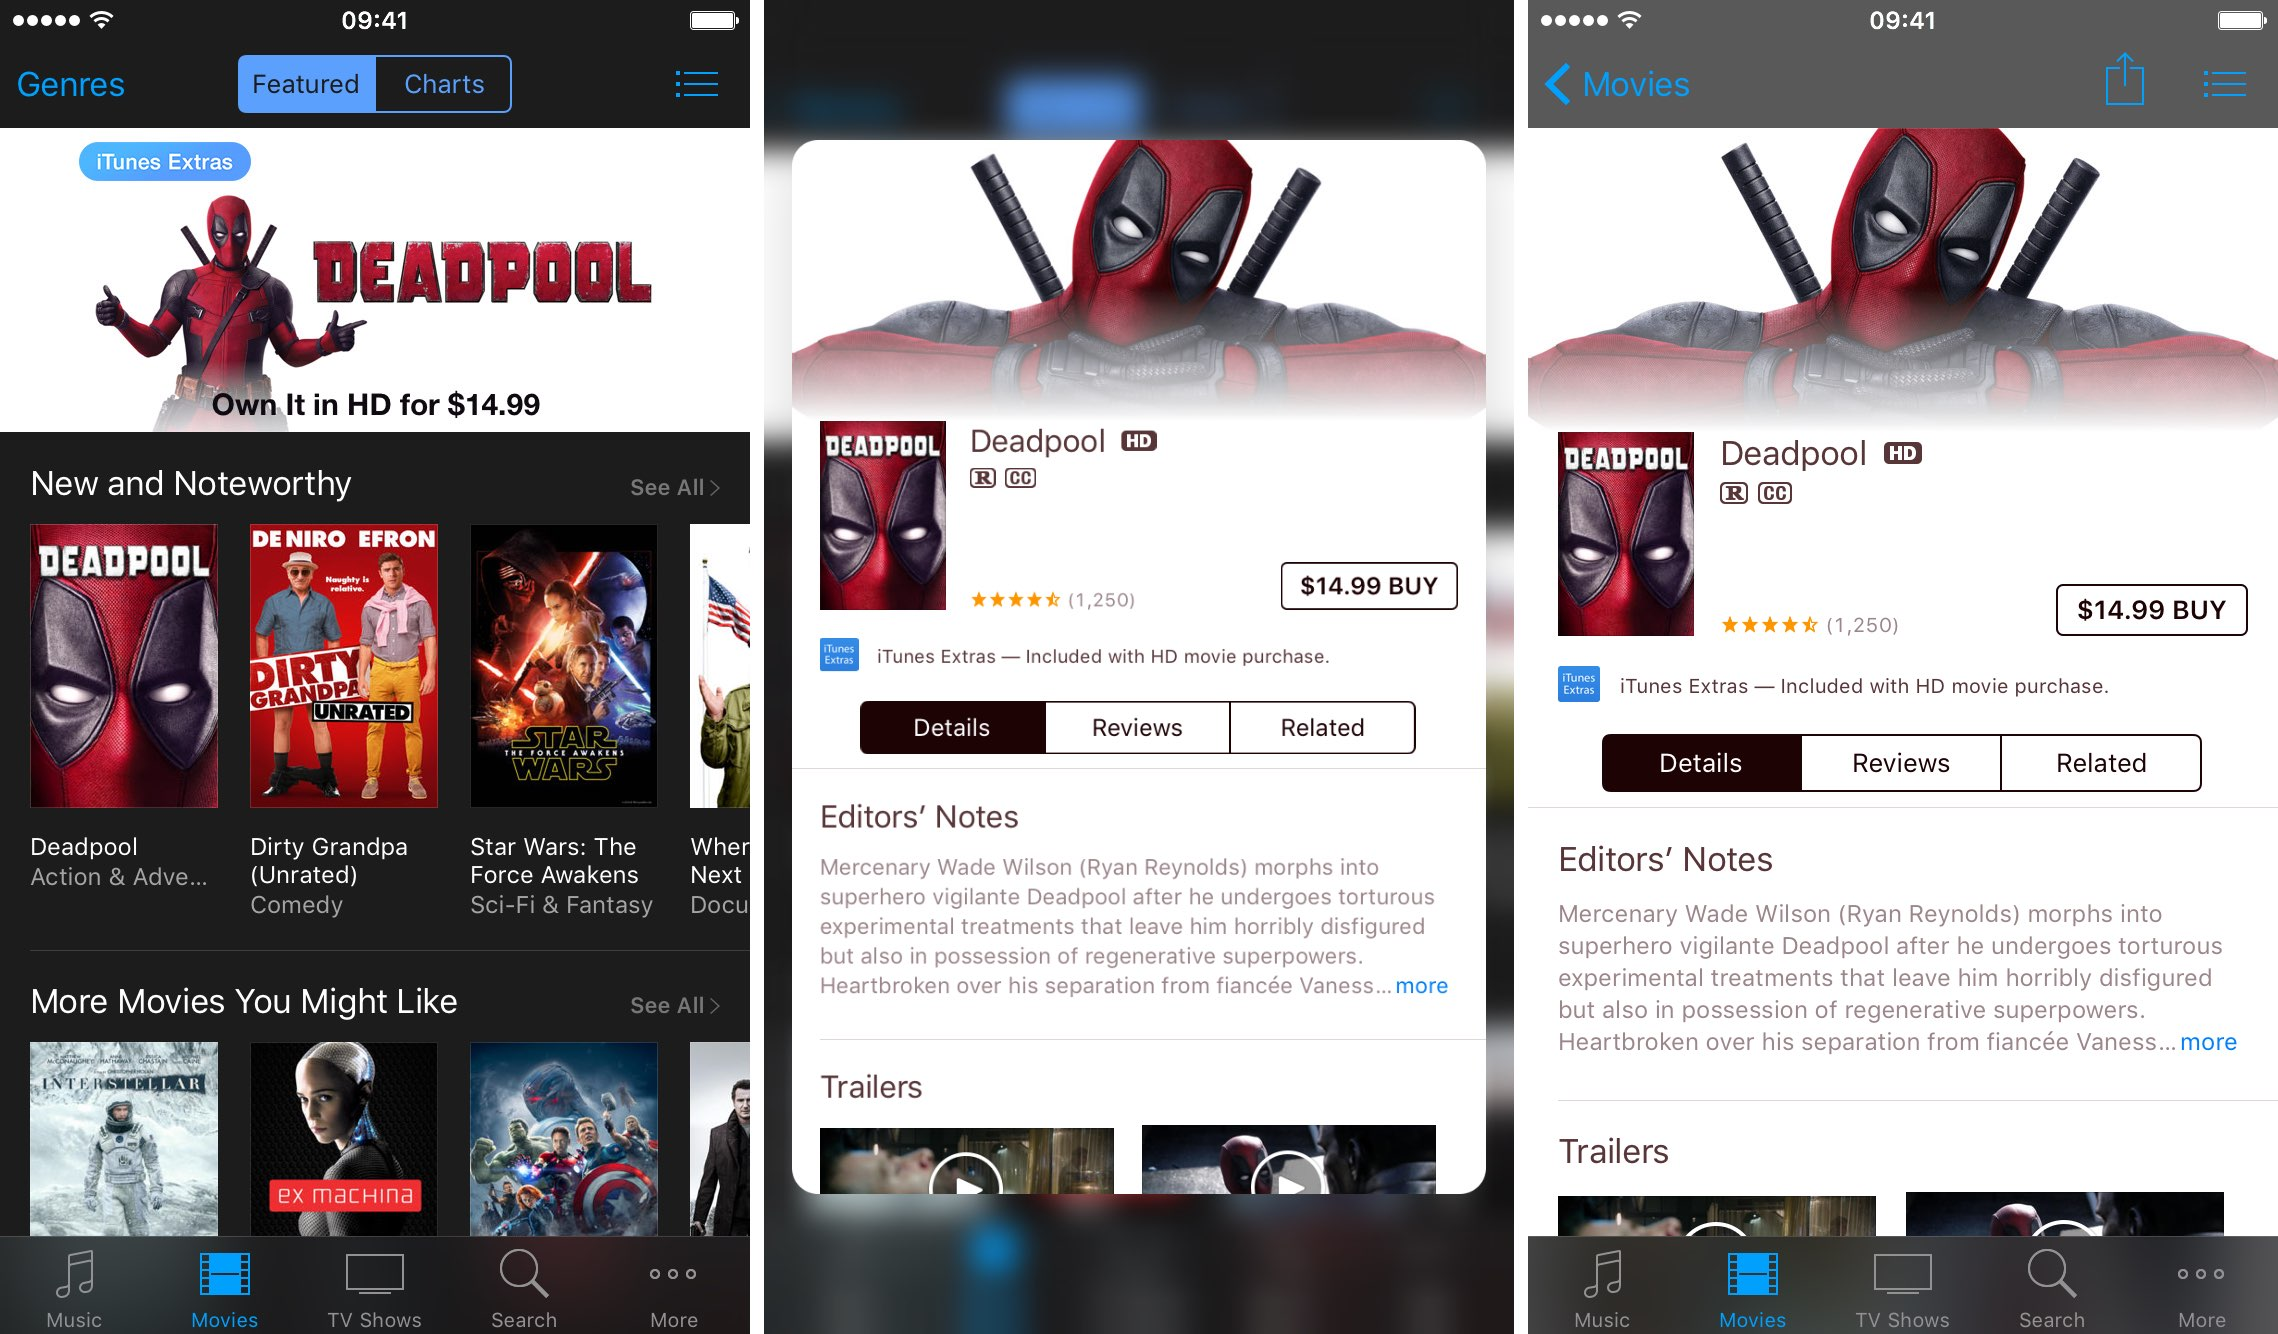 iOS 9.3 3D Touch iTunes Store Películas previsualizaciones Captura de pantalla del iPhone 001